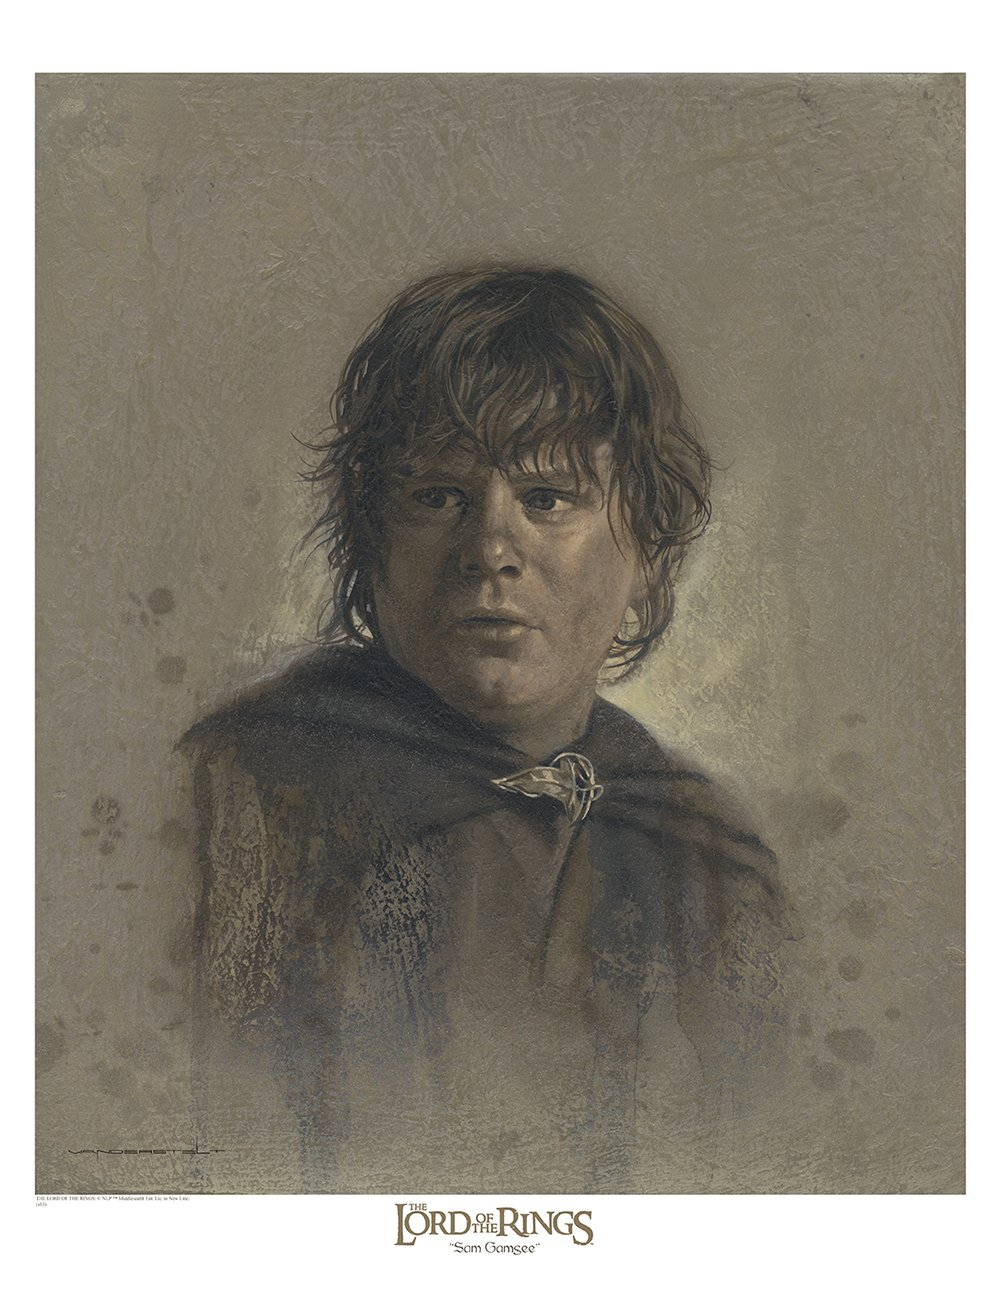 Samwise 12 x 16 Antique Paper Giclee Art print - The Lord of the Rings VanderStelt Studio